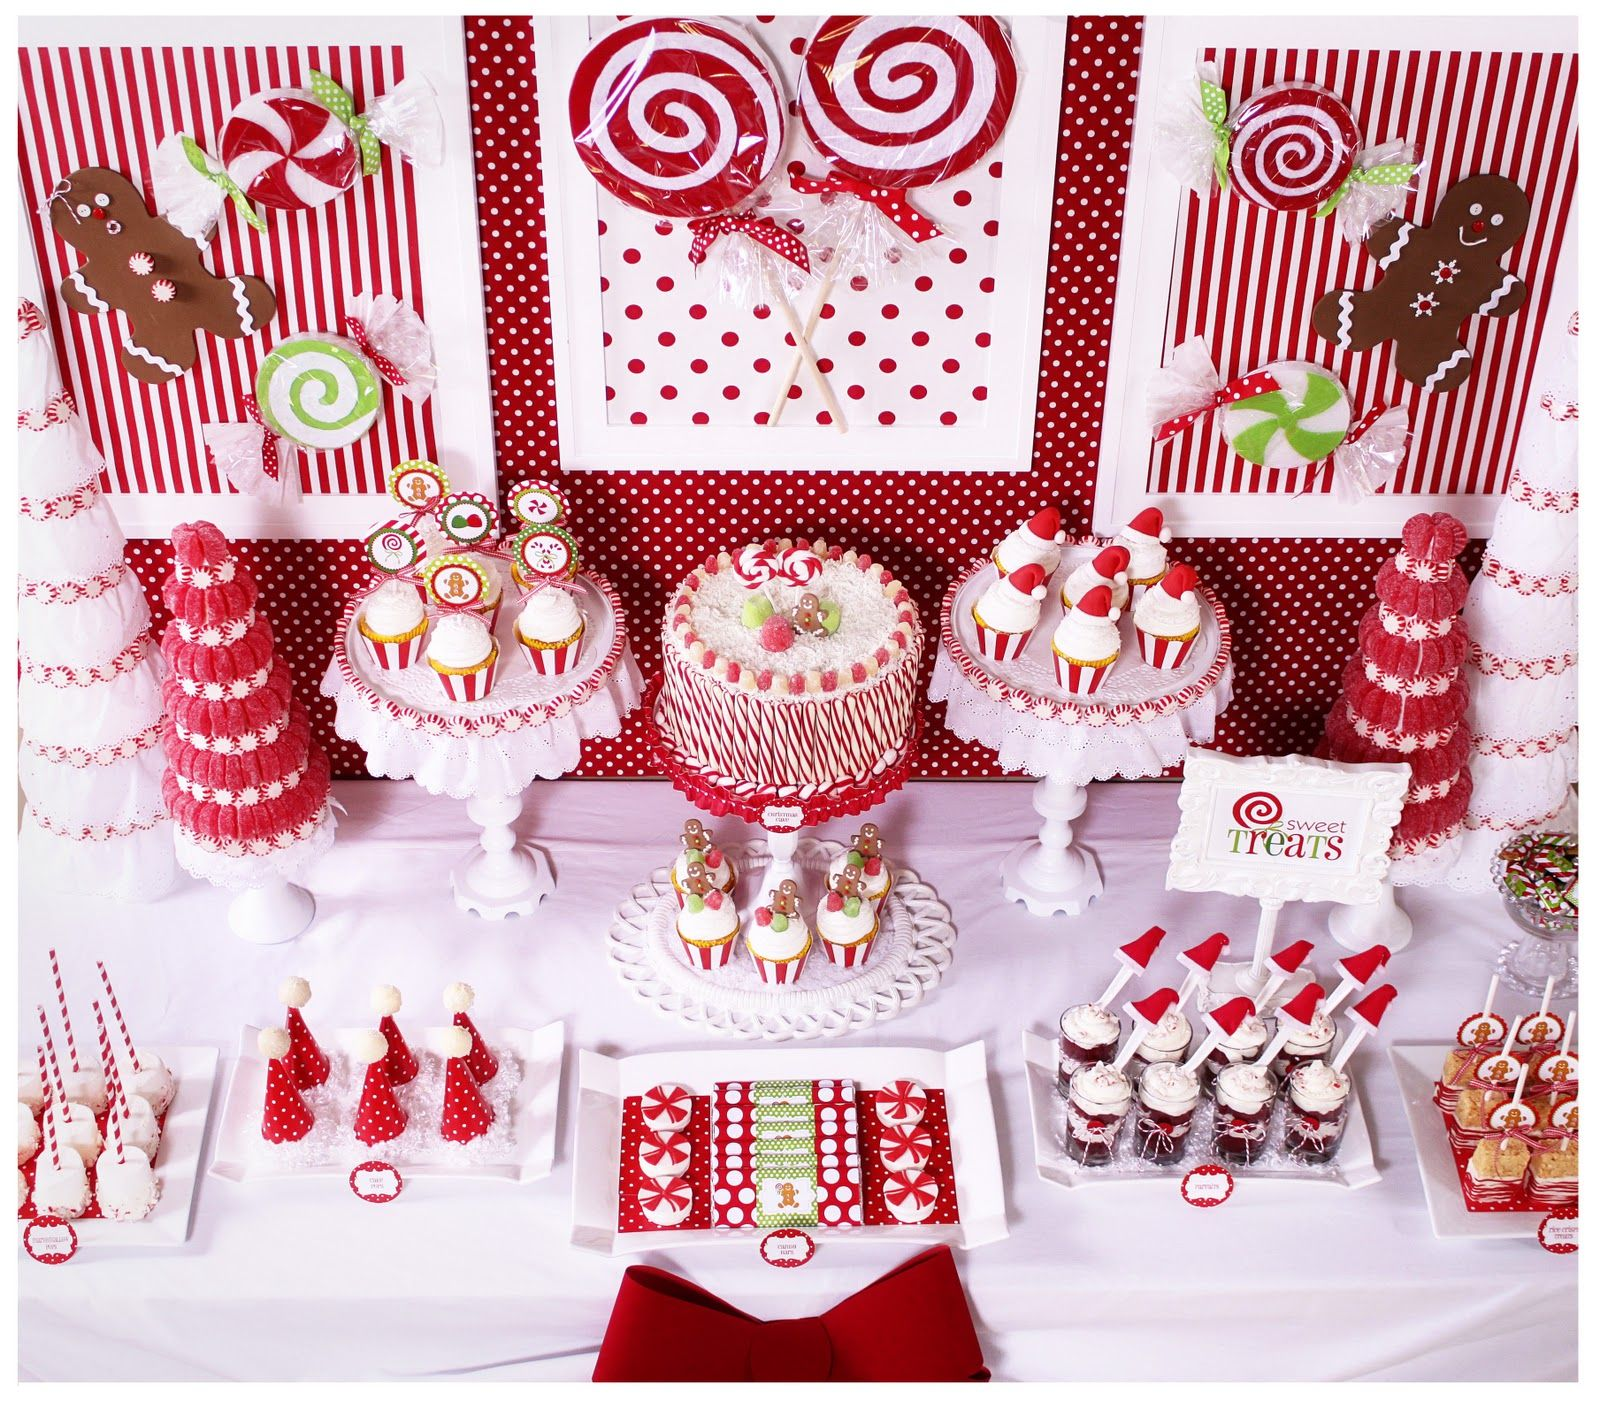 Lovely Theme Ideas For Christmas Parties Part - 14: Candy Land Christmas Party - Karau0027s Party Ideas - The Place For All Things  Party